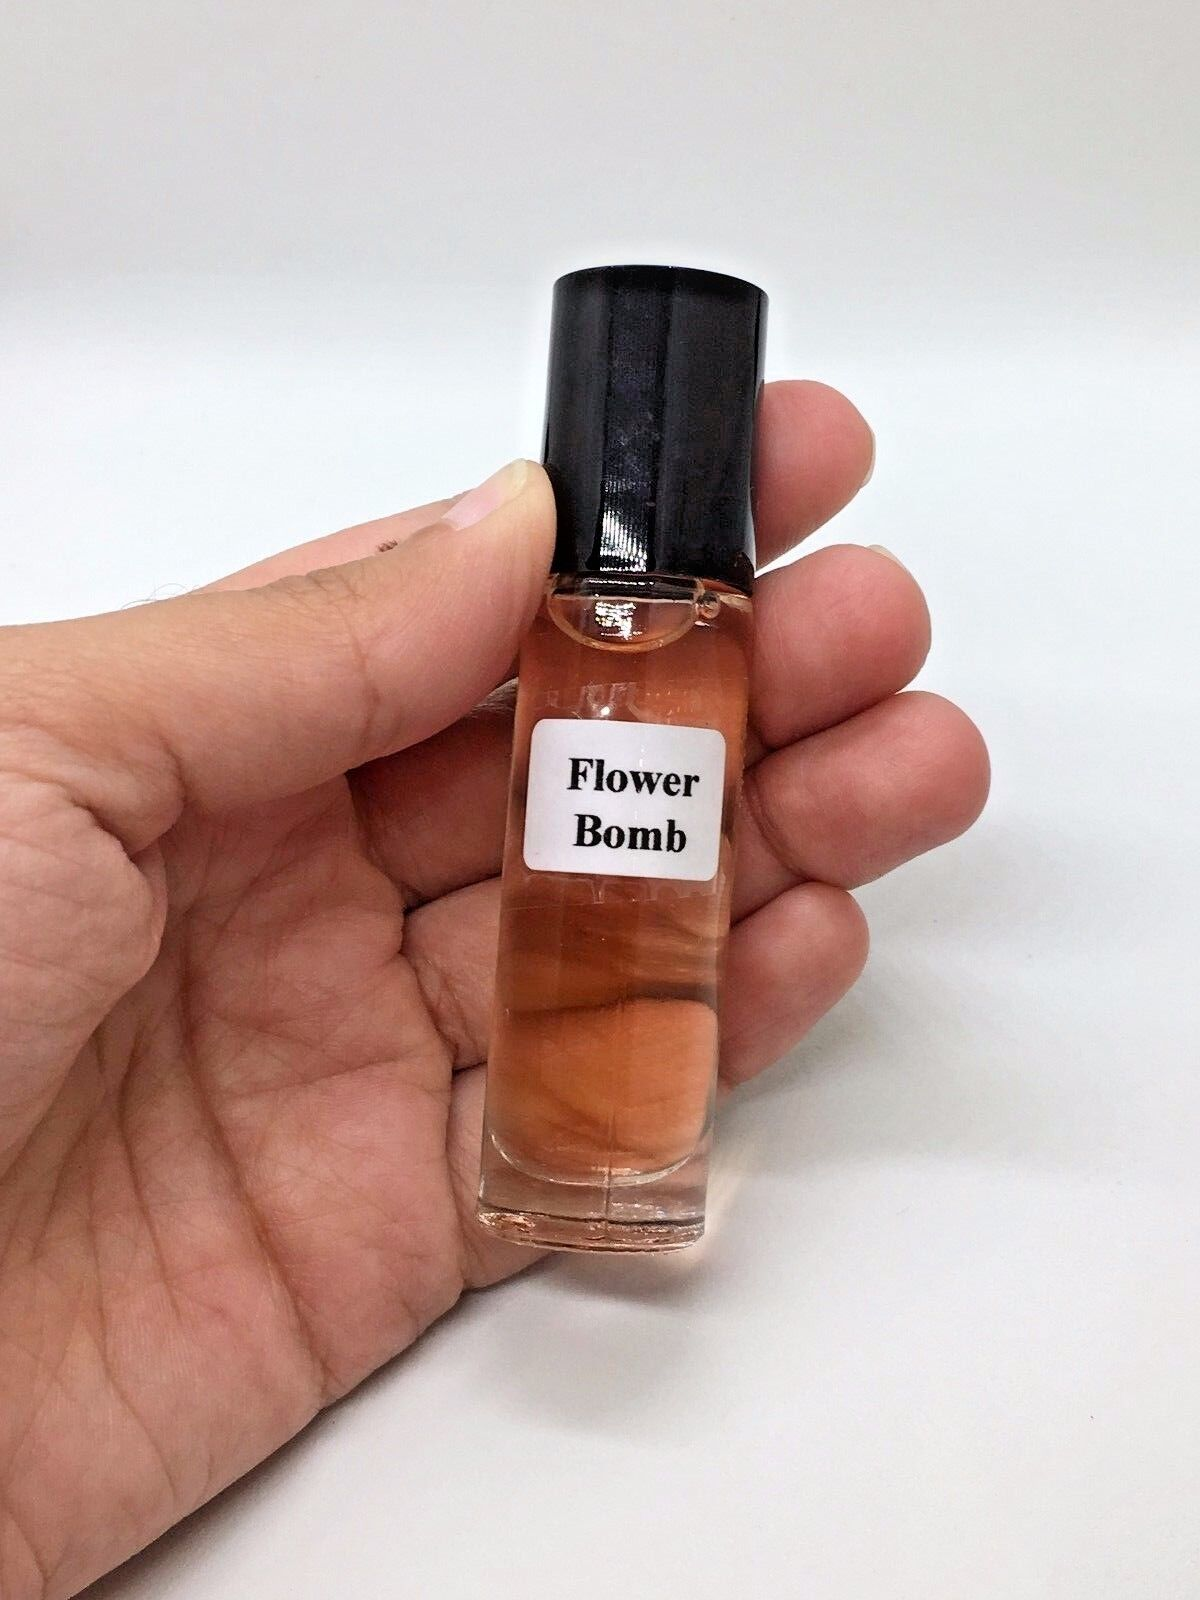 Flowerbomb by Viktor & Rolf Type Perfume Body Oil for Women